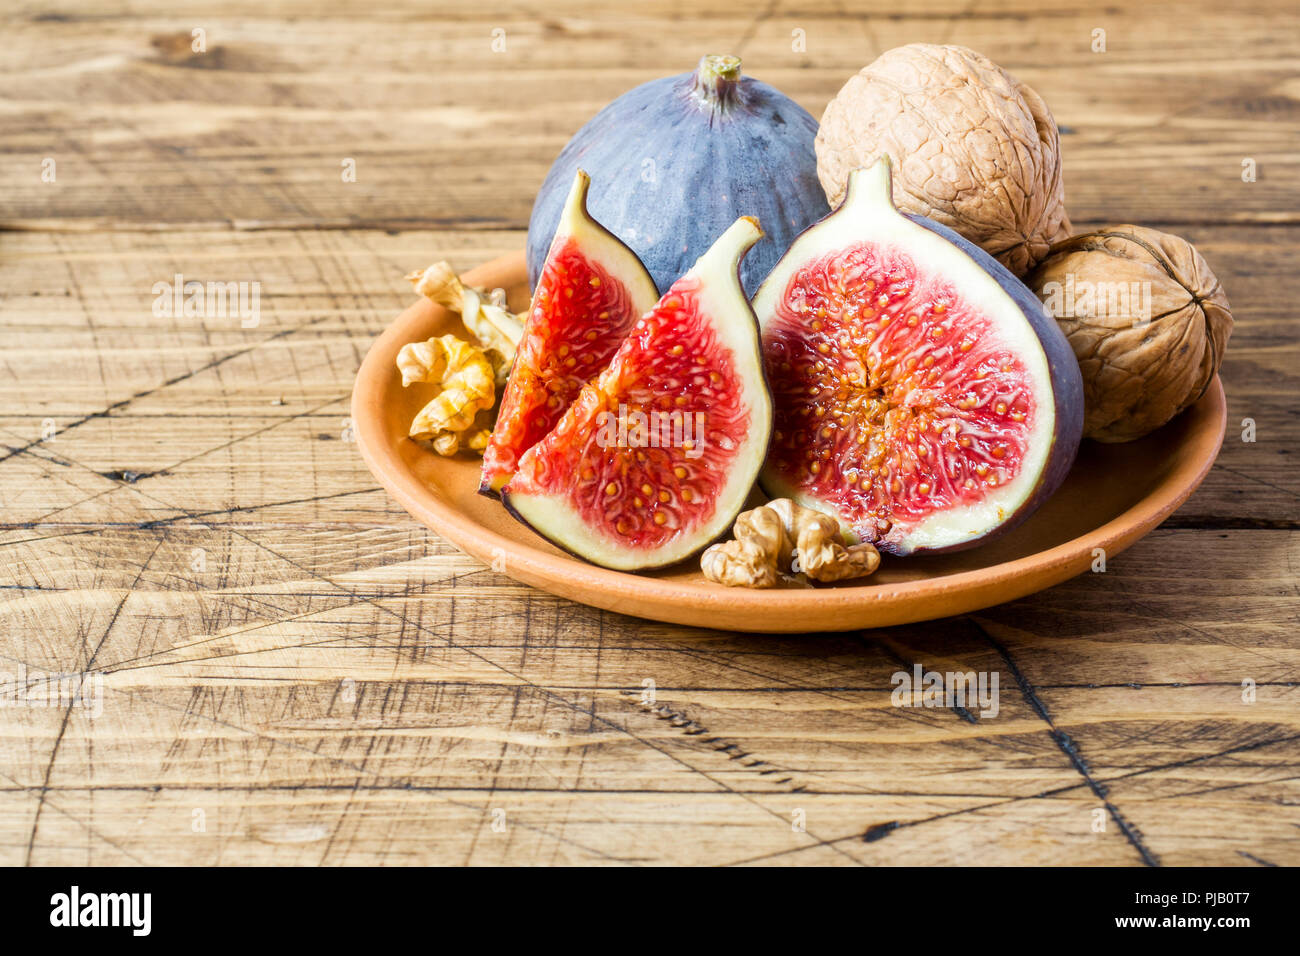 Fresh figs whole and cut kernels of walnuts on a plate the old wooden background Stock Photo